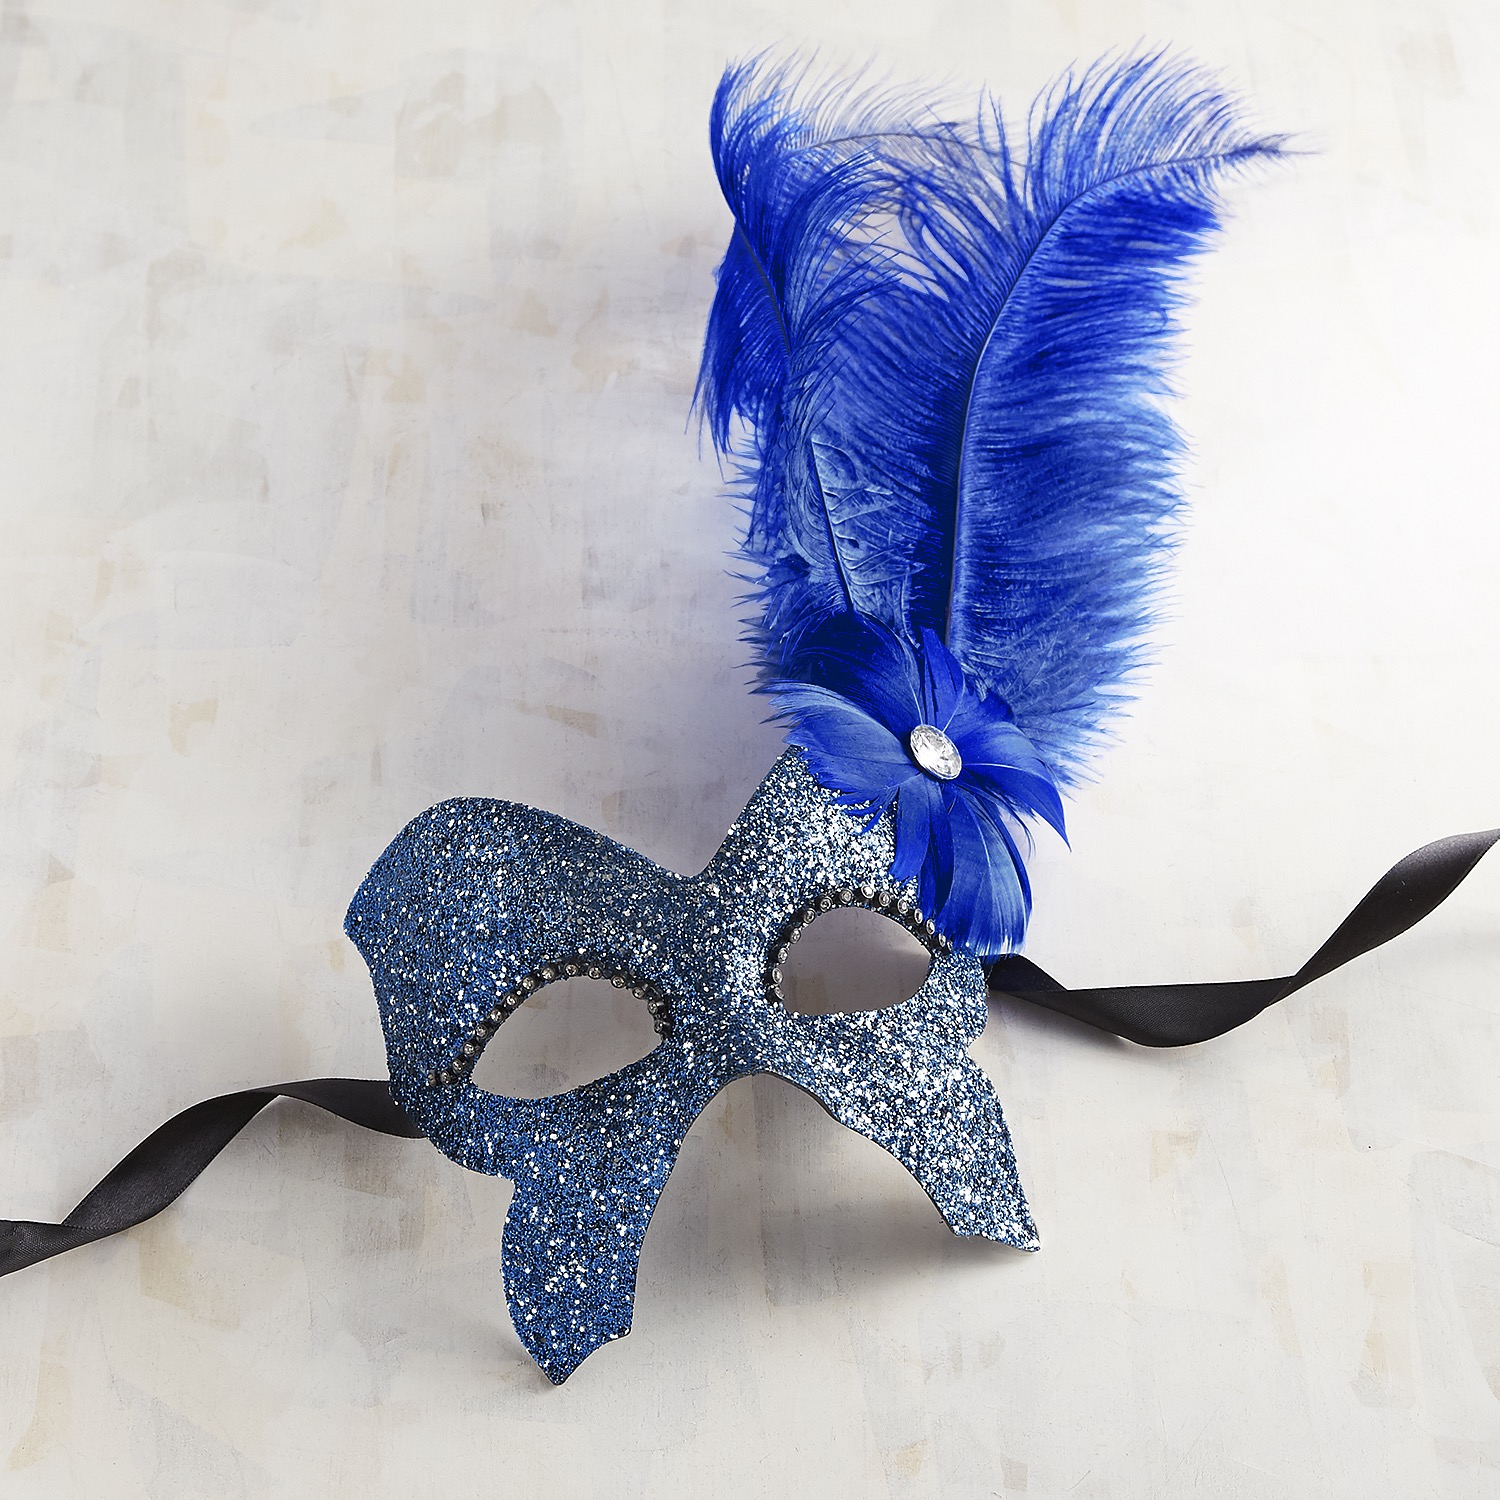 Blue Butterfly & Feathers Italian Masquerade Mask